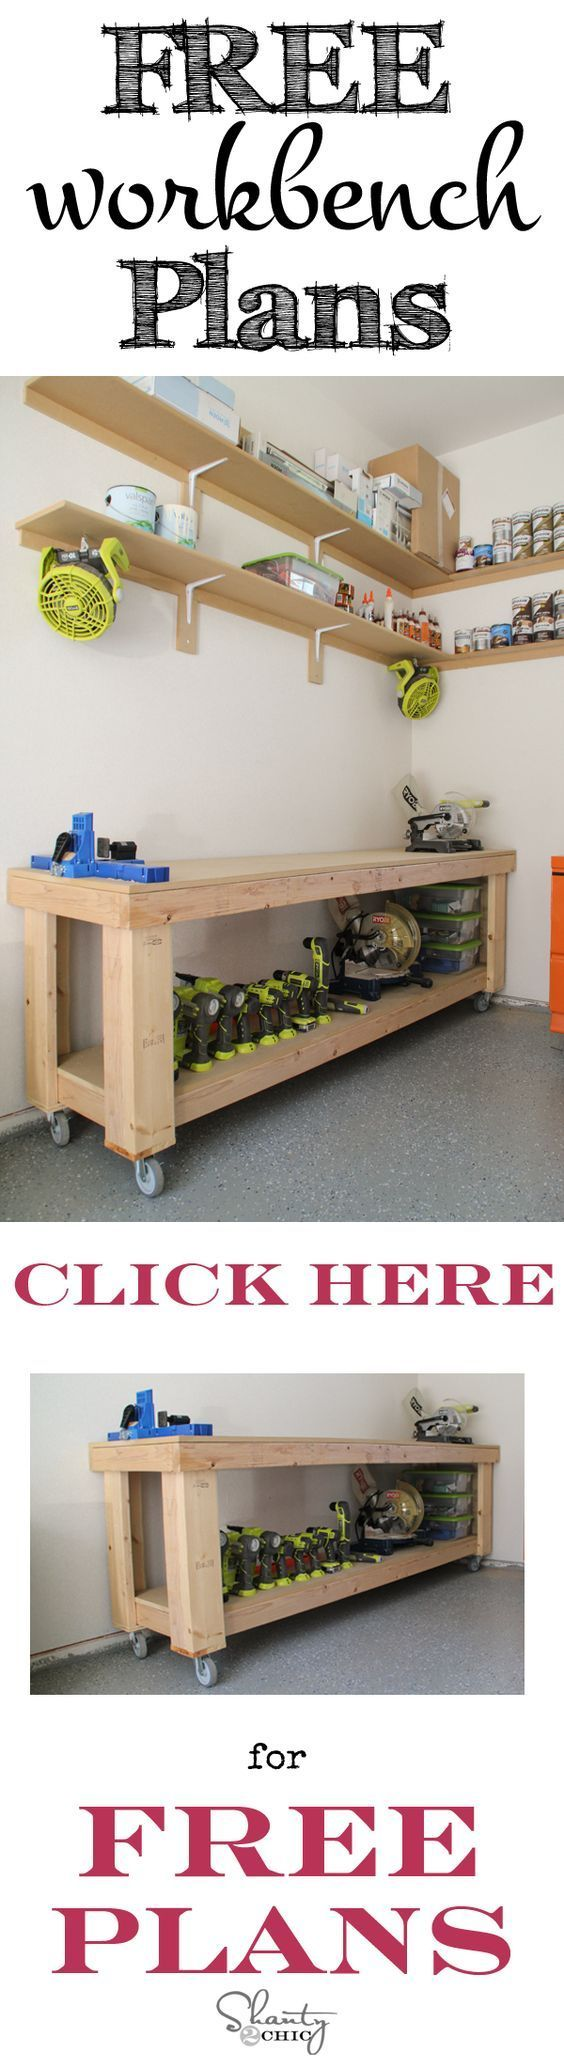 Workbench Plans DIY Workbench plans! This is the perfect size workbench for small work spaces an...